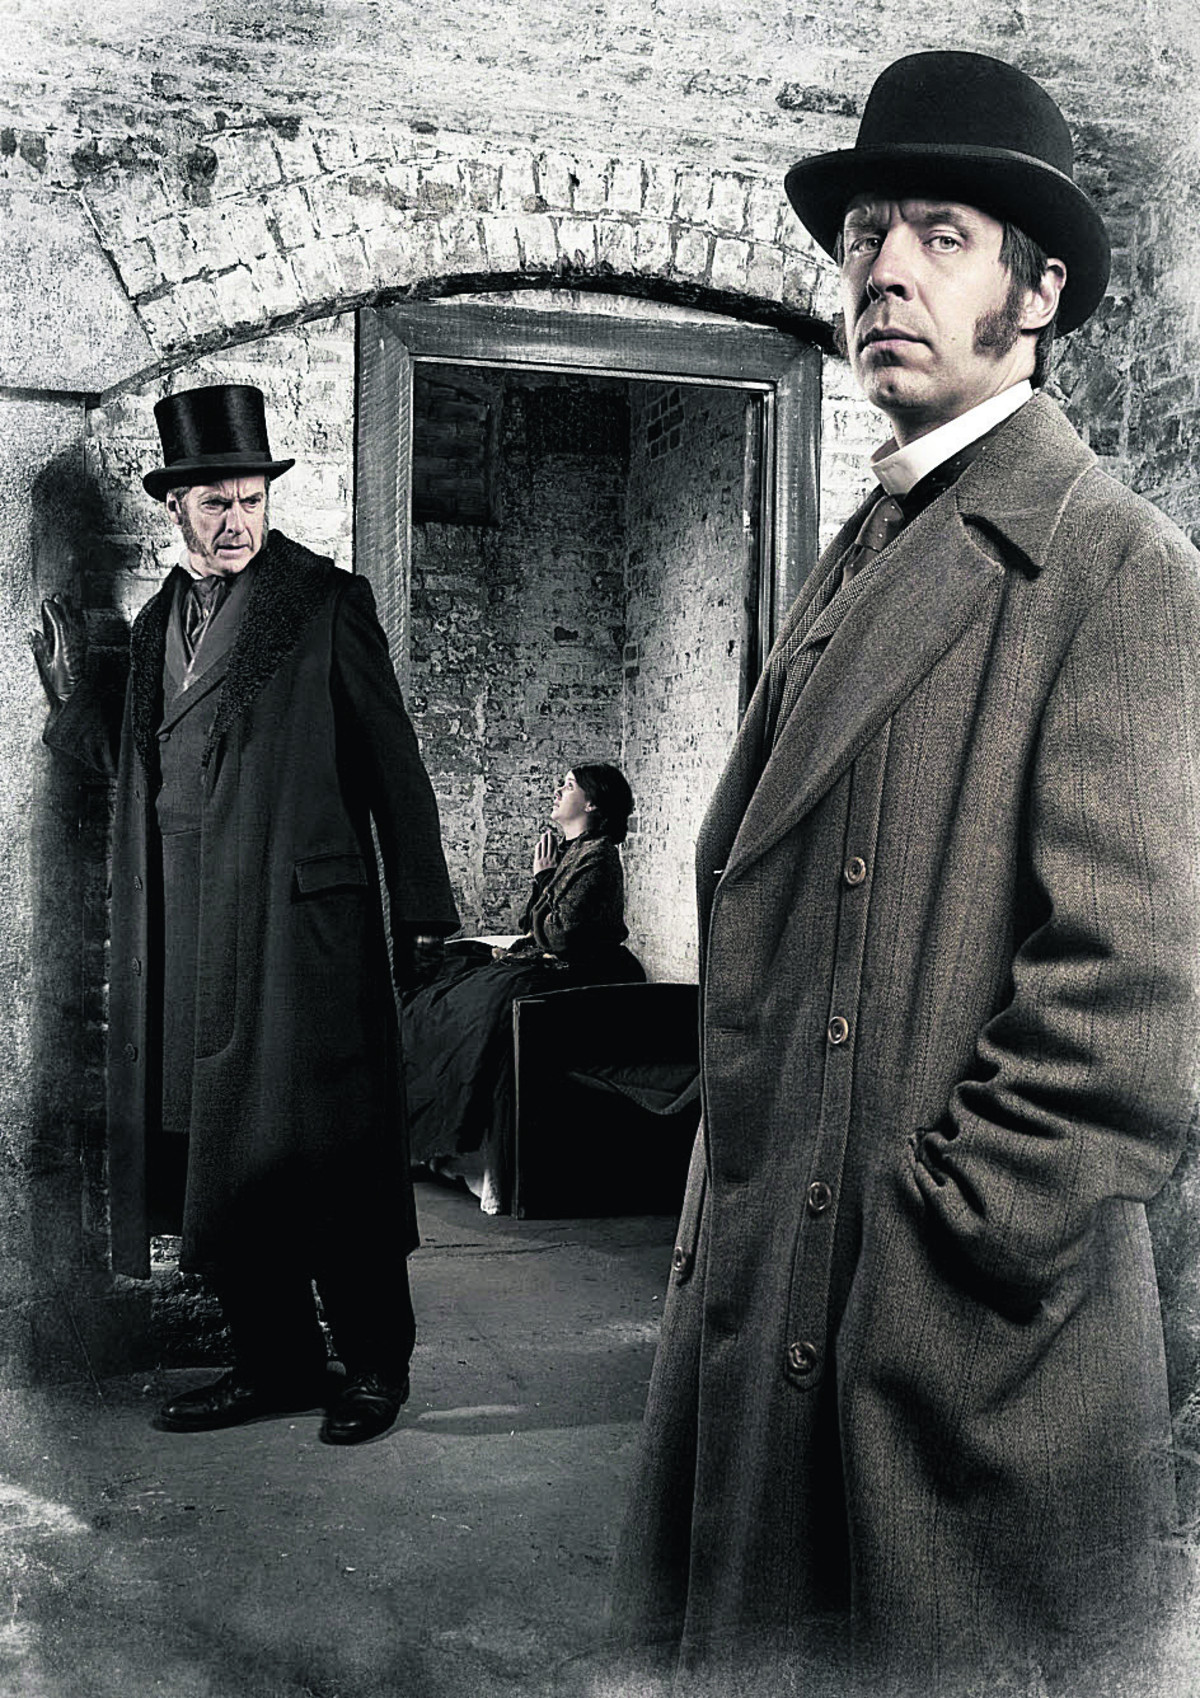 Forward 100 years, as second period TV drama is filmed in Corsham